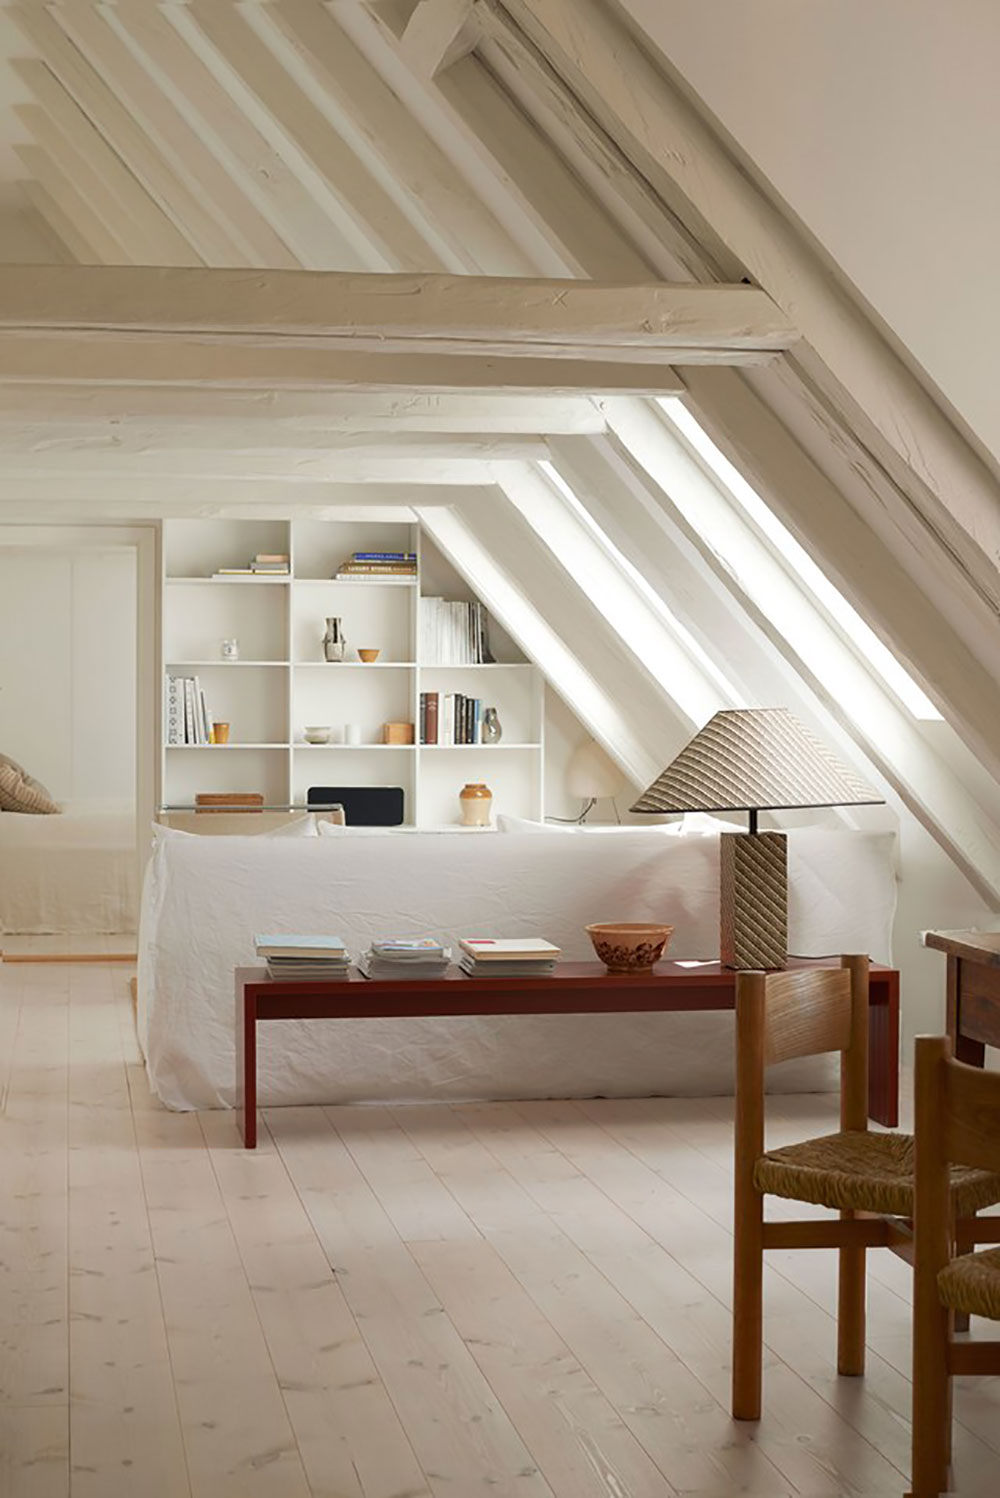 Sunday, Sanctuary, Interiors, Oracle Fox, Home, White, Like Apartment, Copenhagen, Minimal